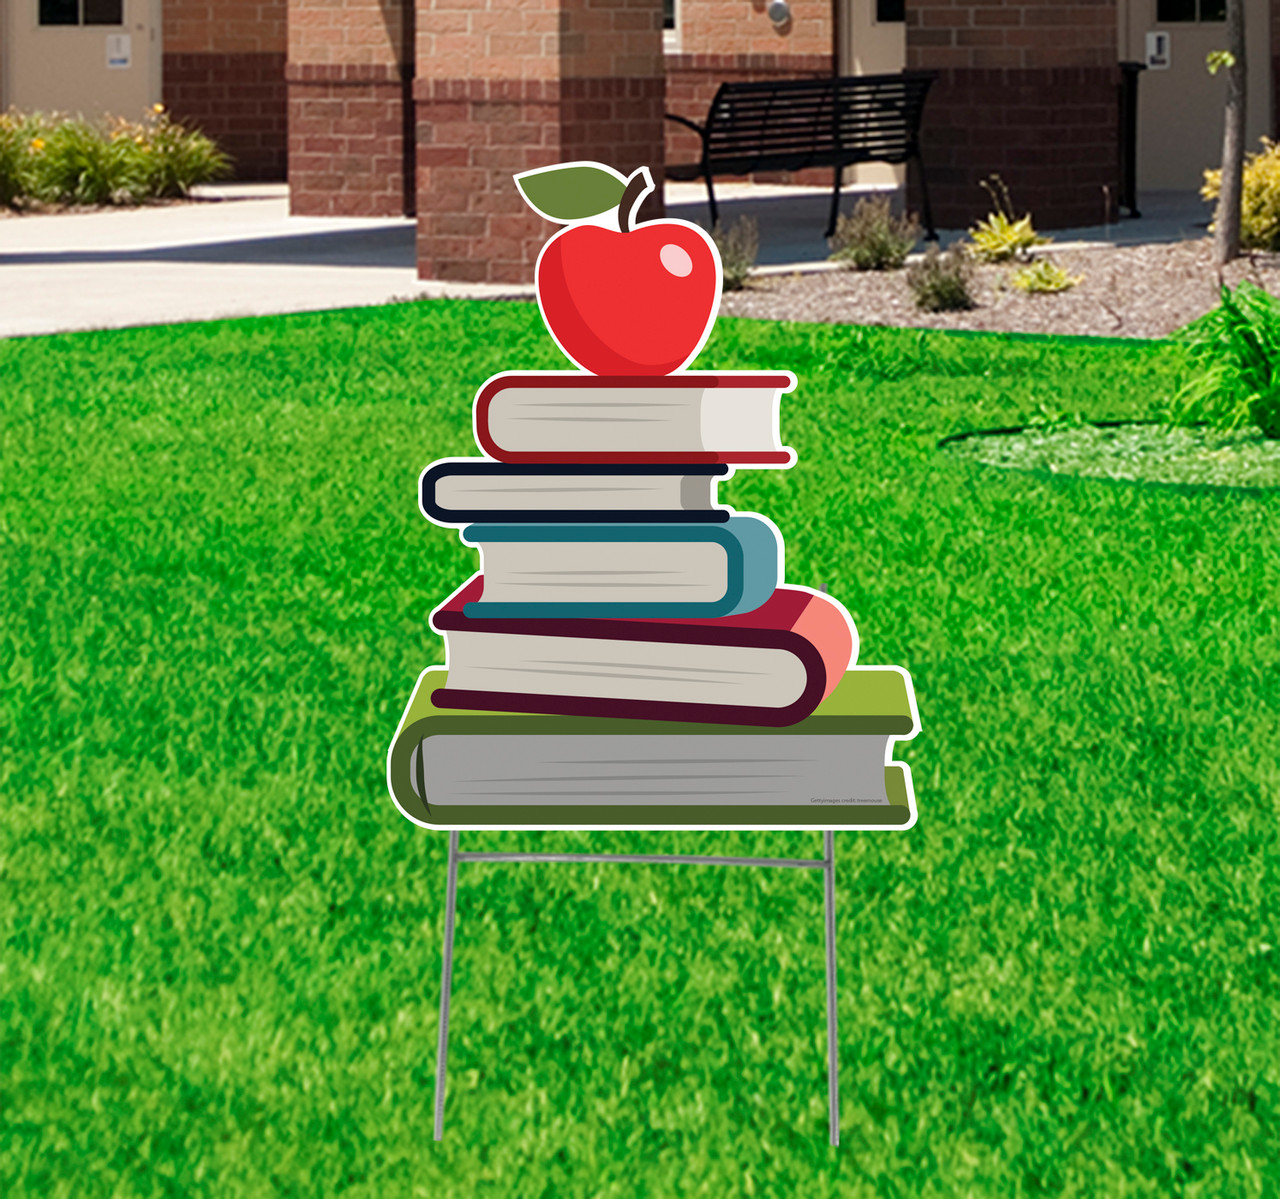 Coroplast outdoor school books with apple on top yard sign.